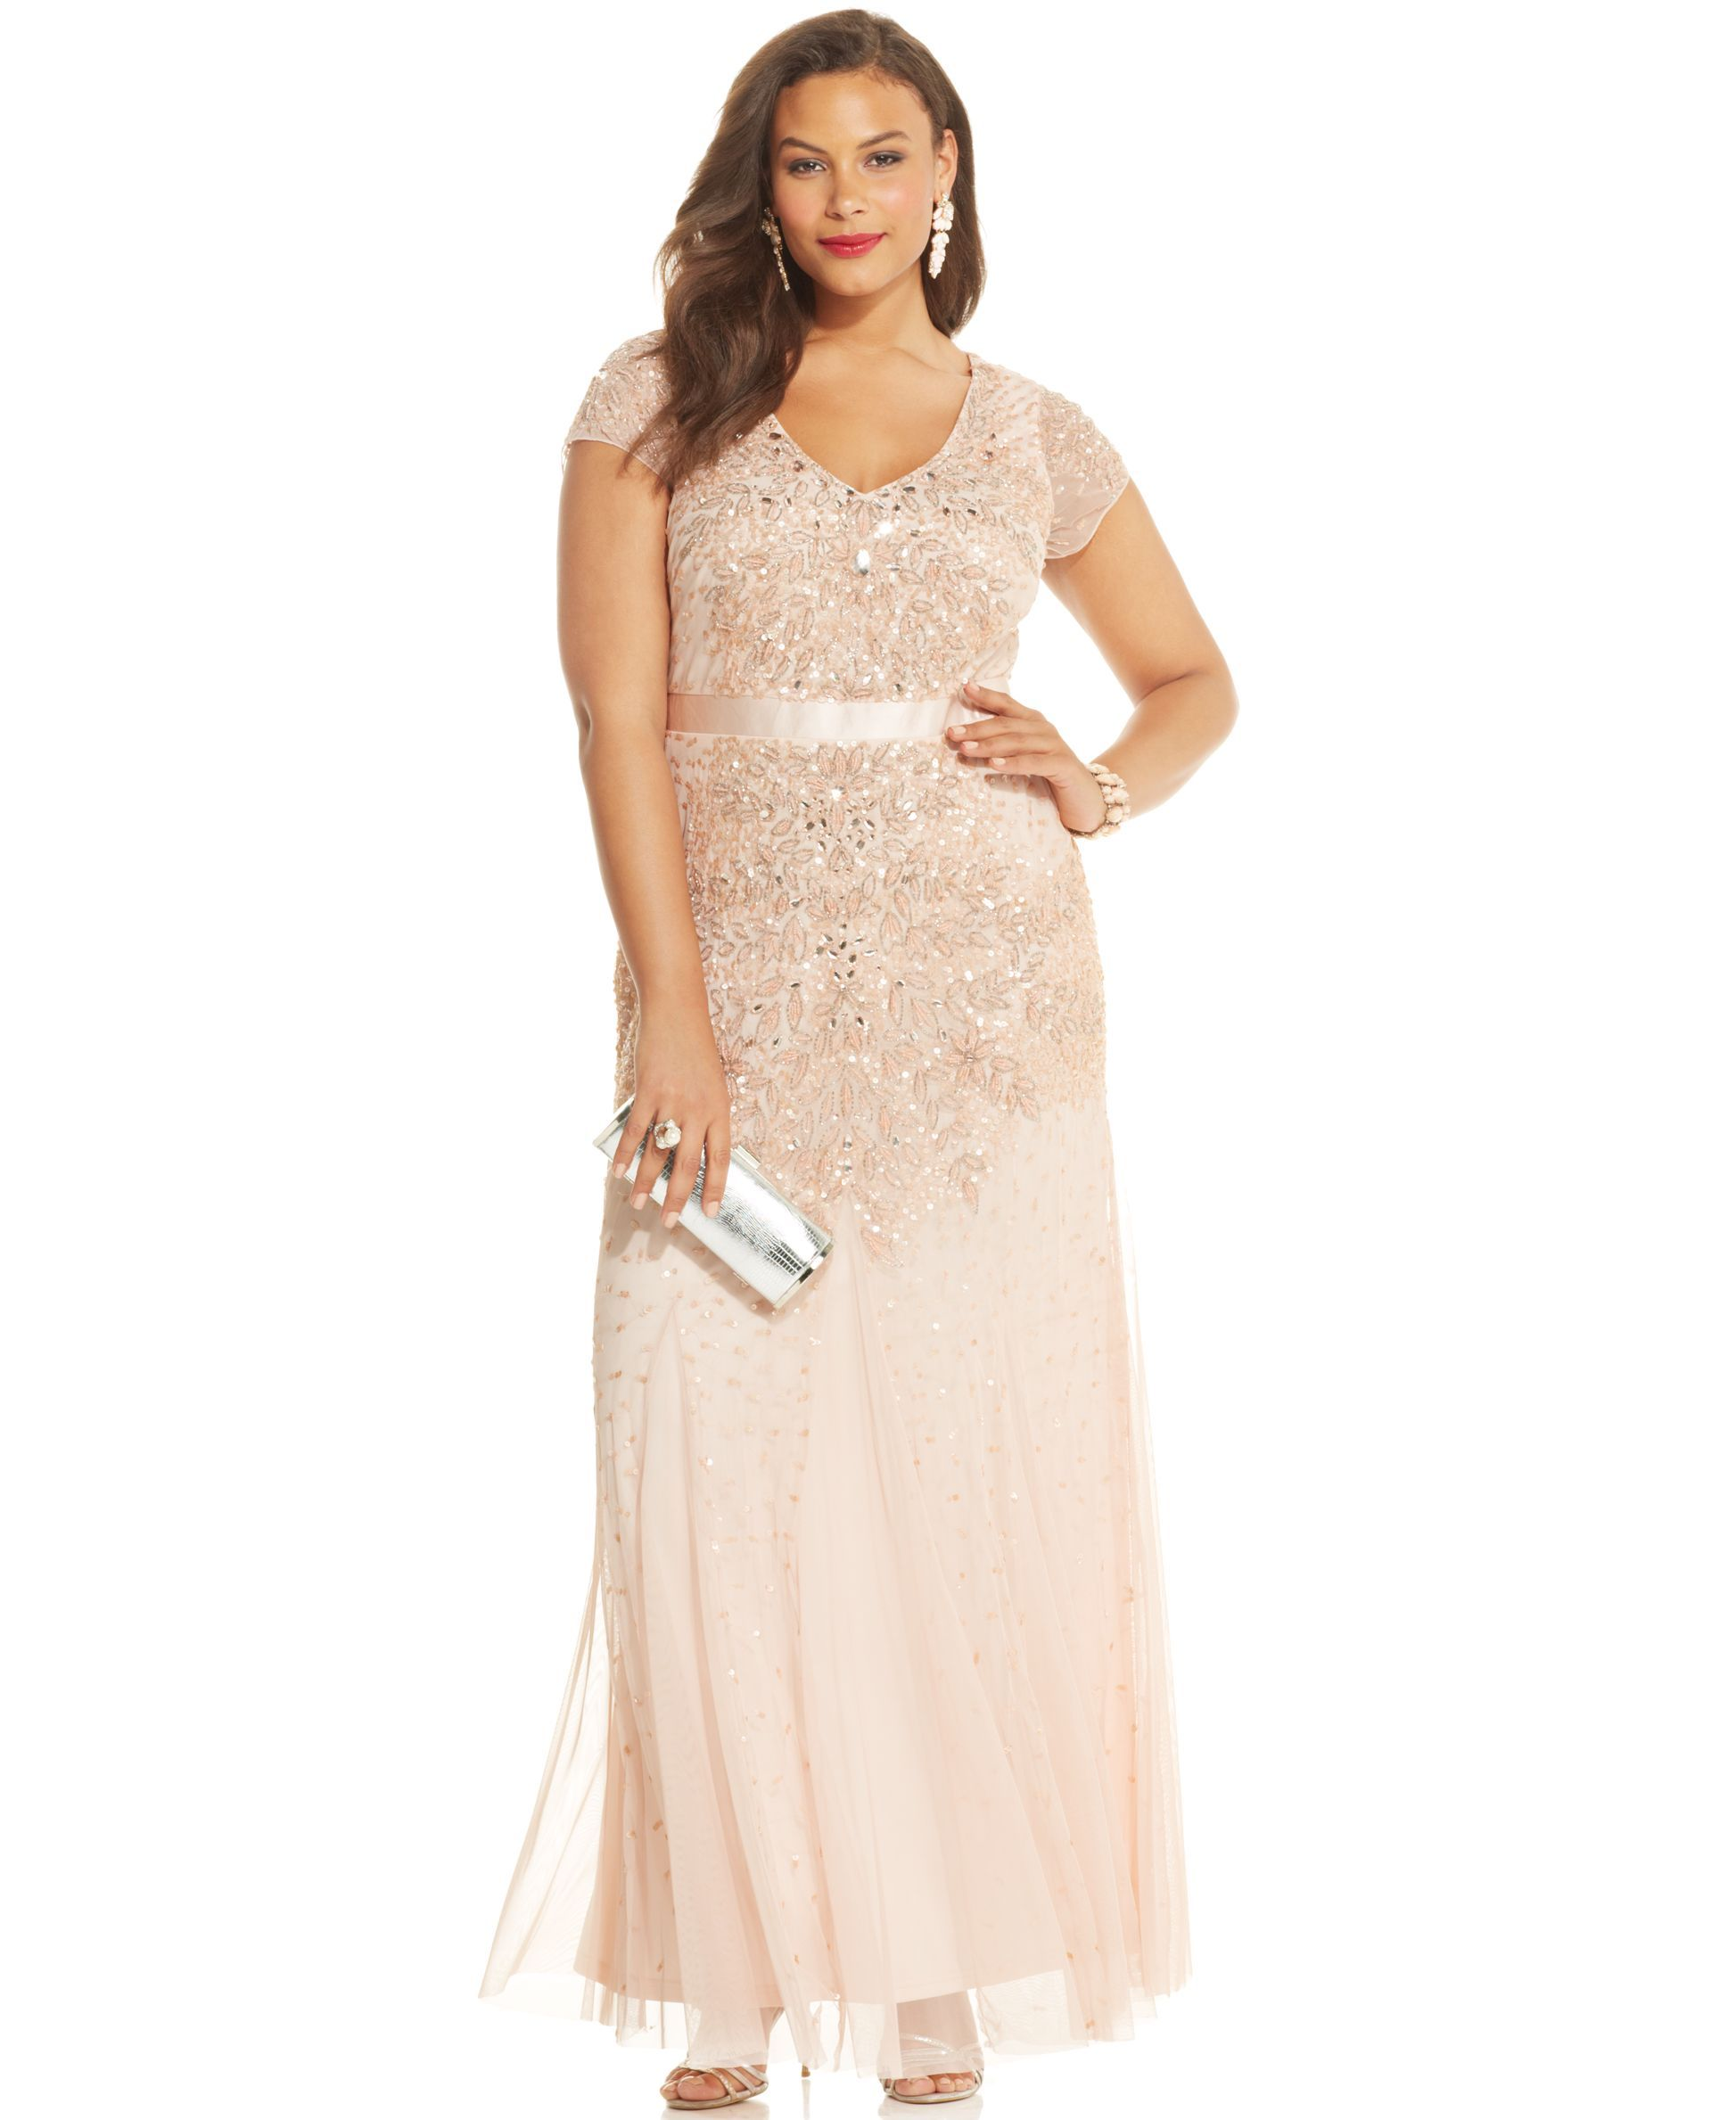 Adrianna Papell Plus Size Cap-Sleeve Embellished Gown - Dresses ...